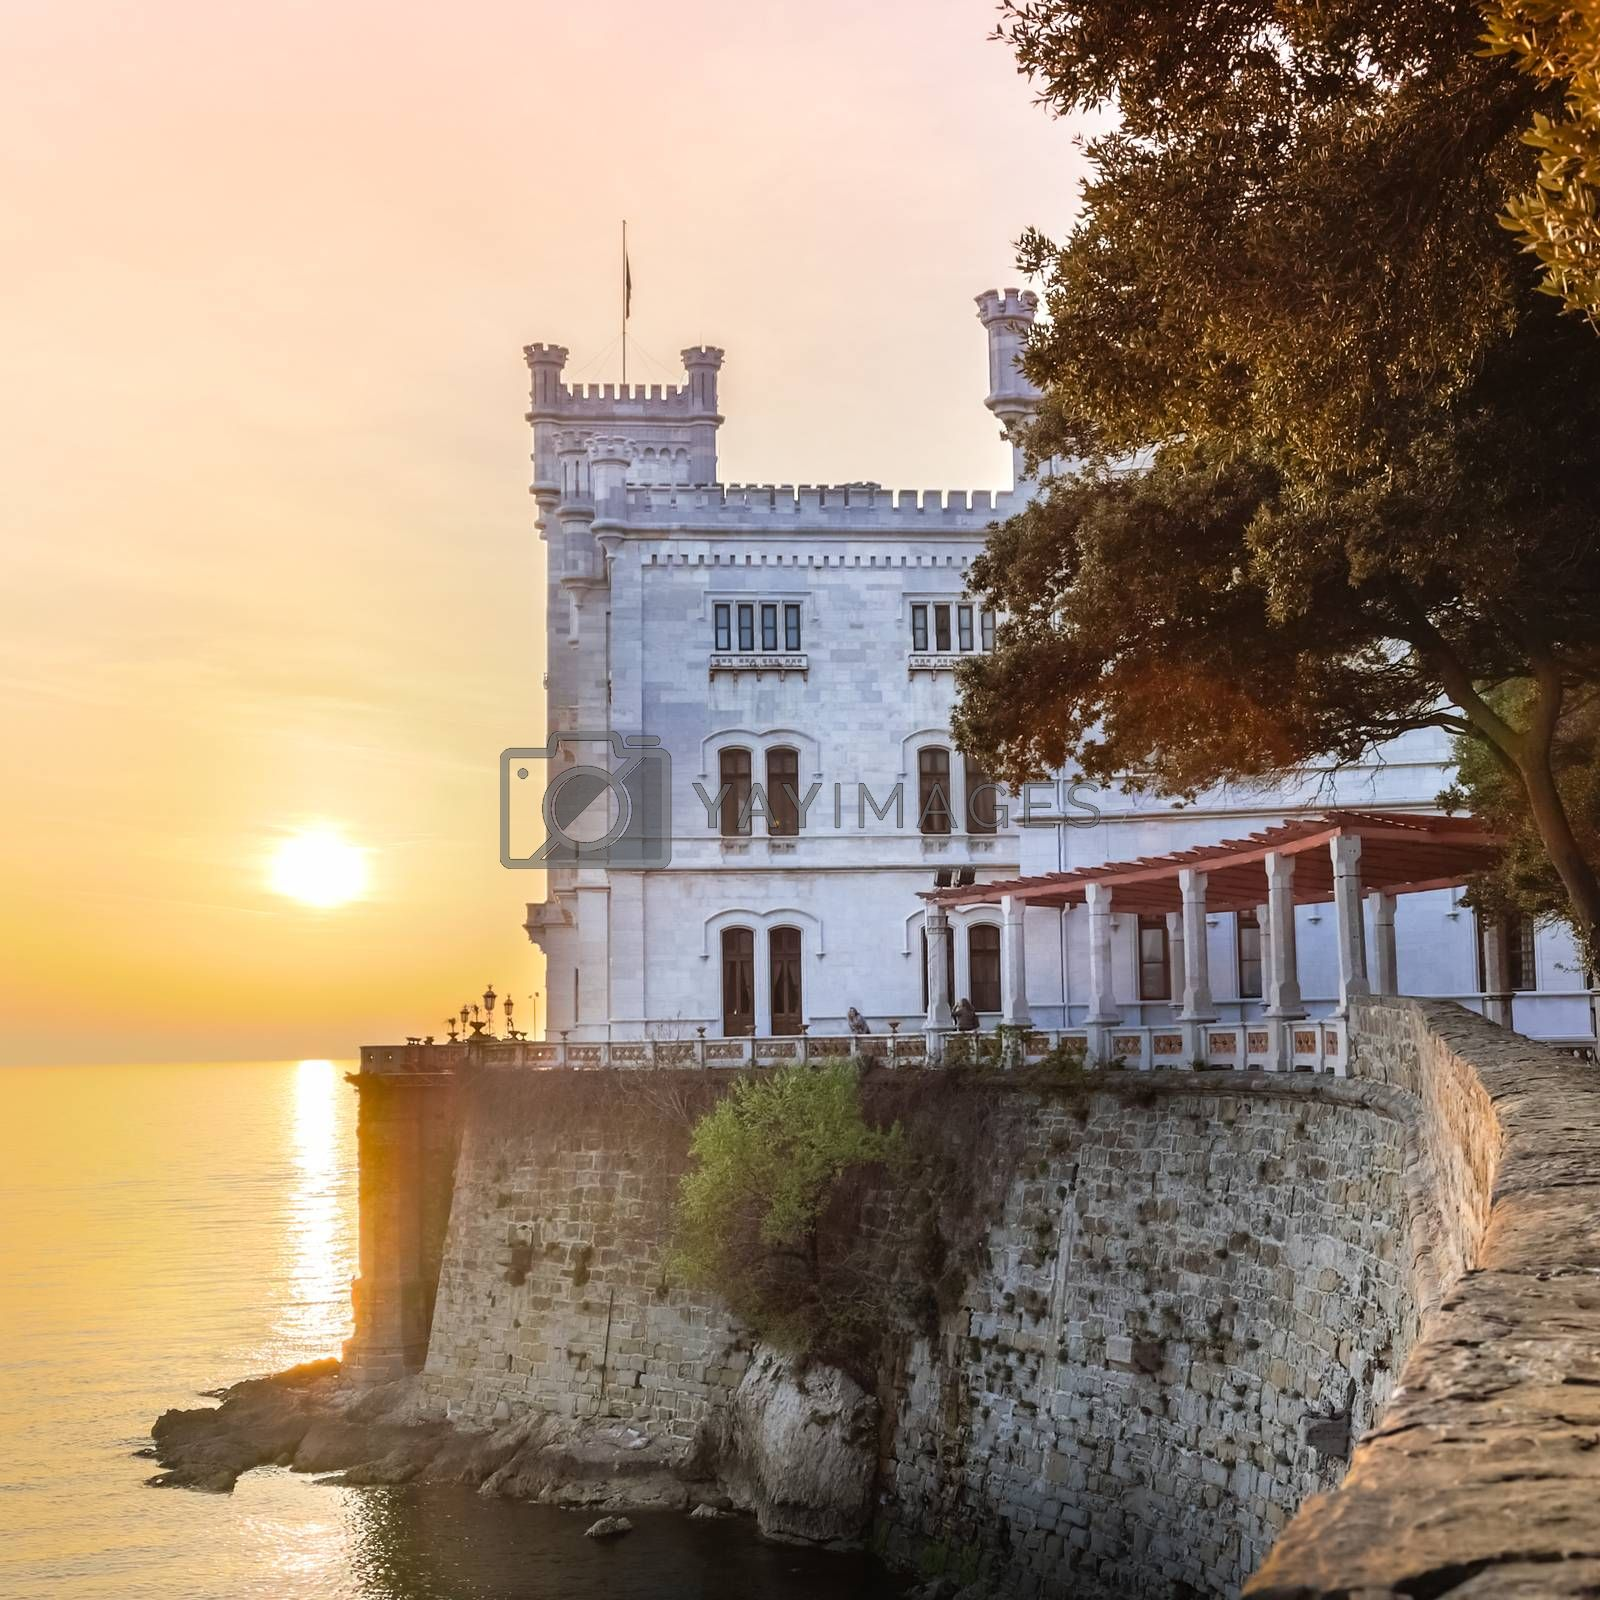 Royalty free image of Miramare Castle, Trieste, Italy, Europe. by kasto